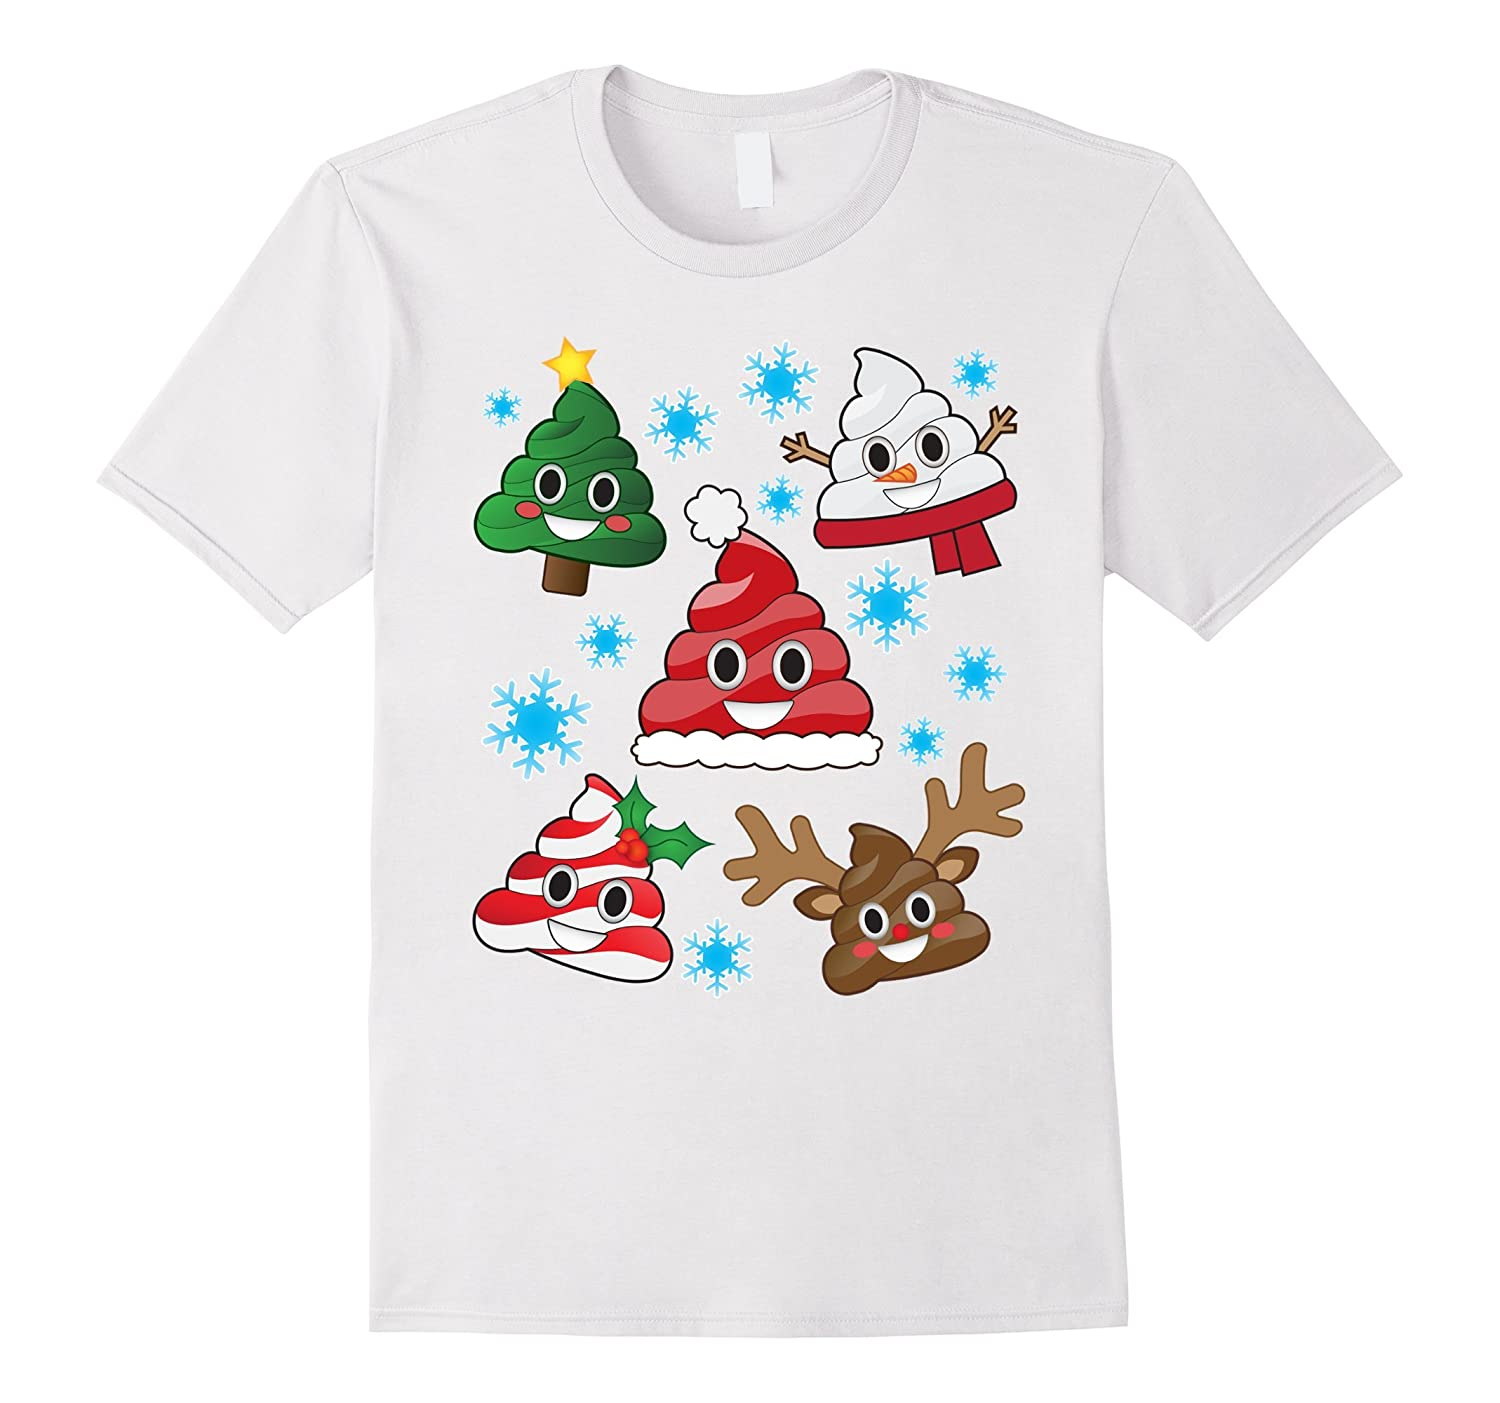 Shop for customizable Cute Holiday clothing on Zazzle. Check out our t-shirts, polo shirts, hoodies, & more great items. Start browsing today!